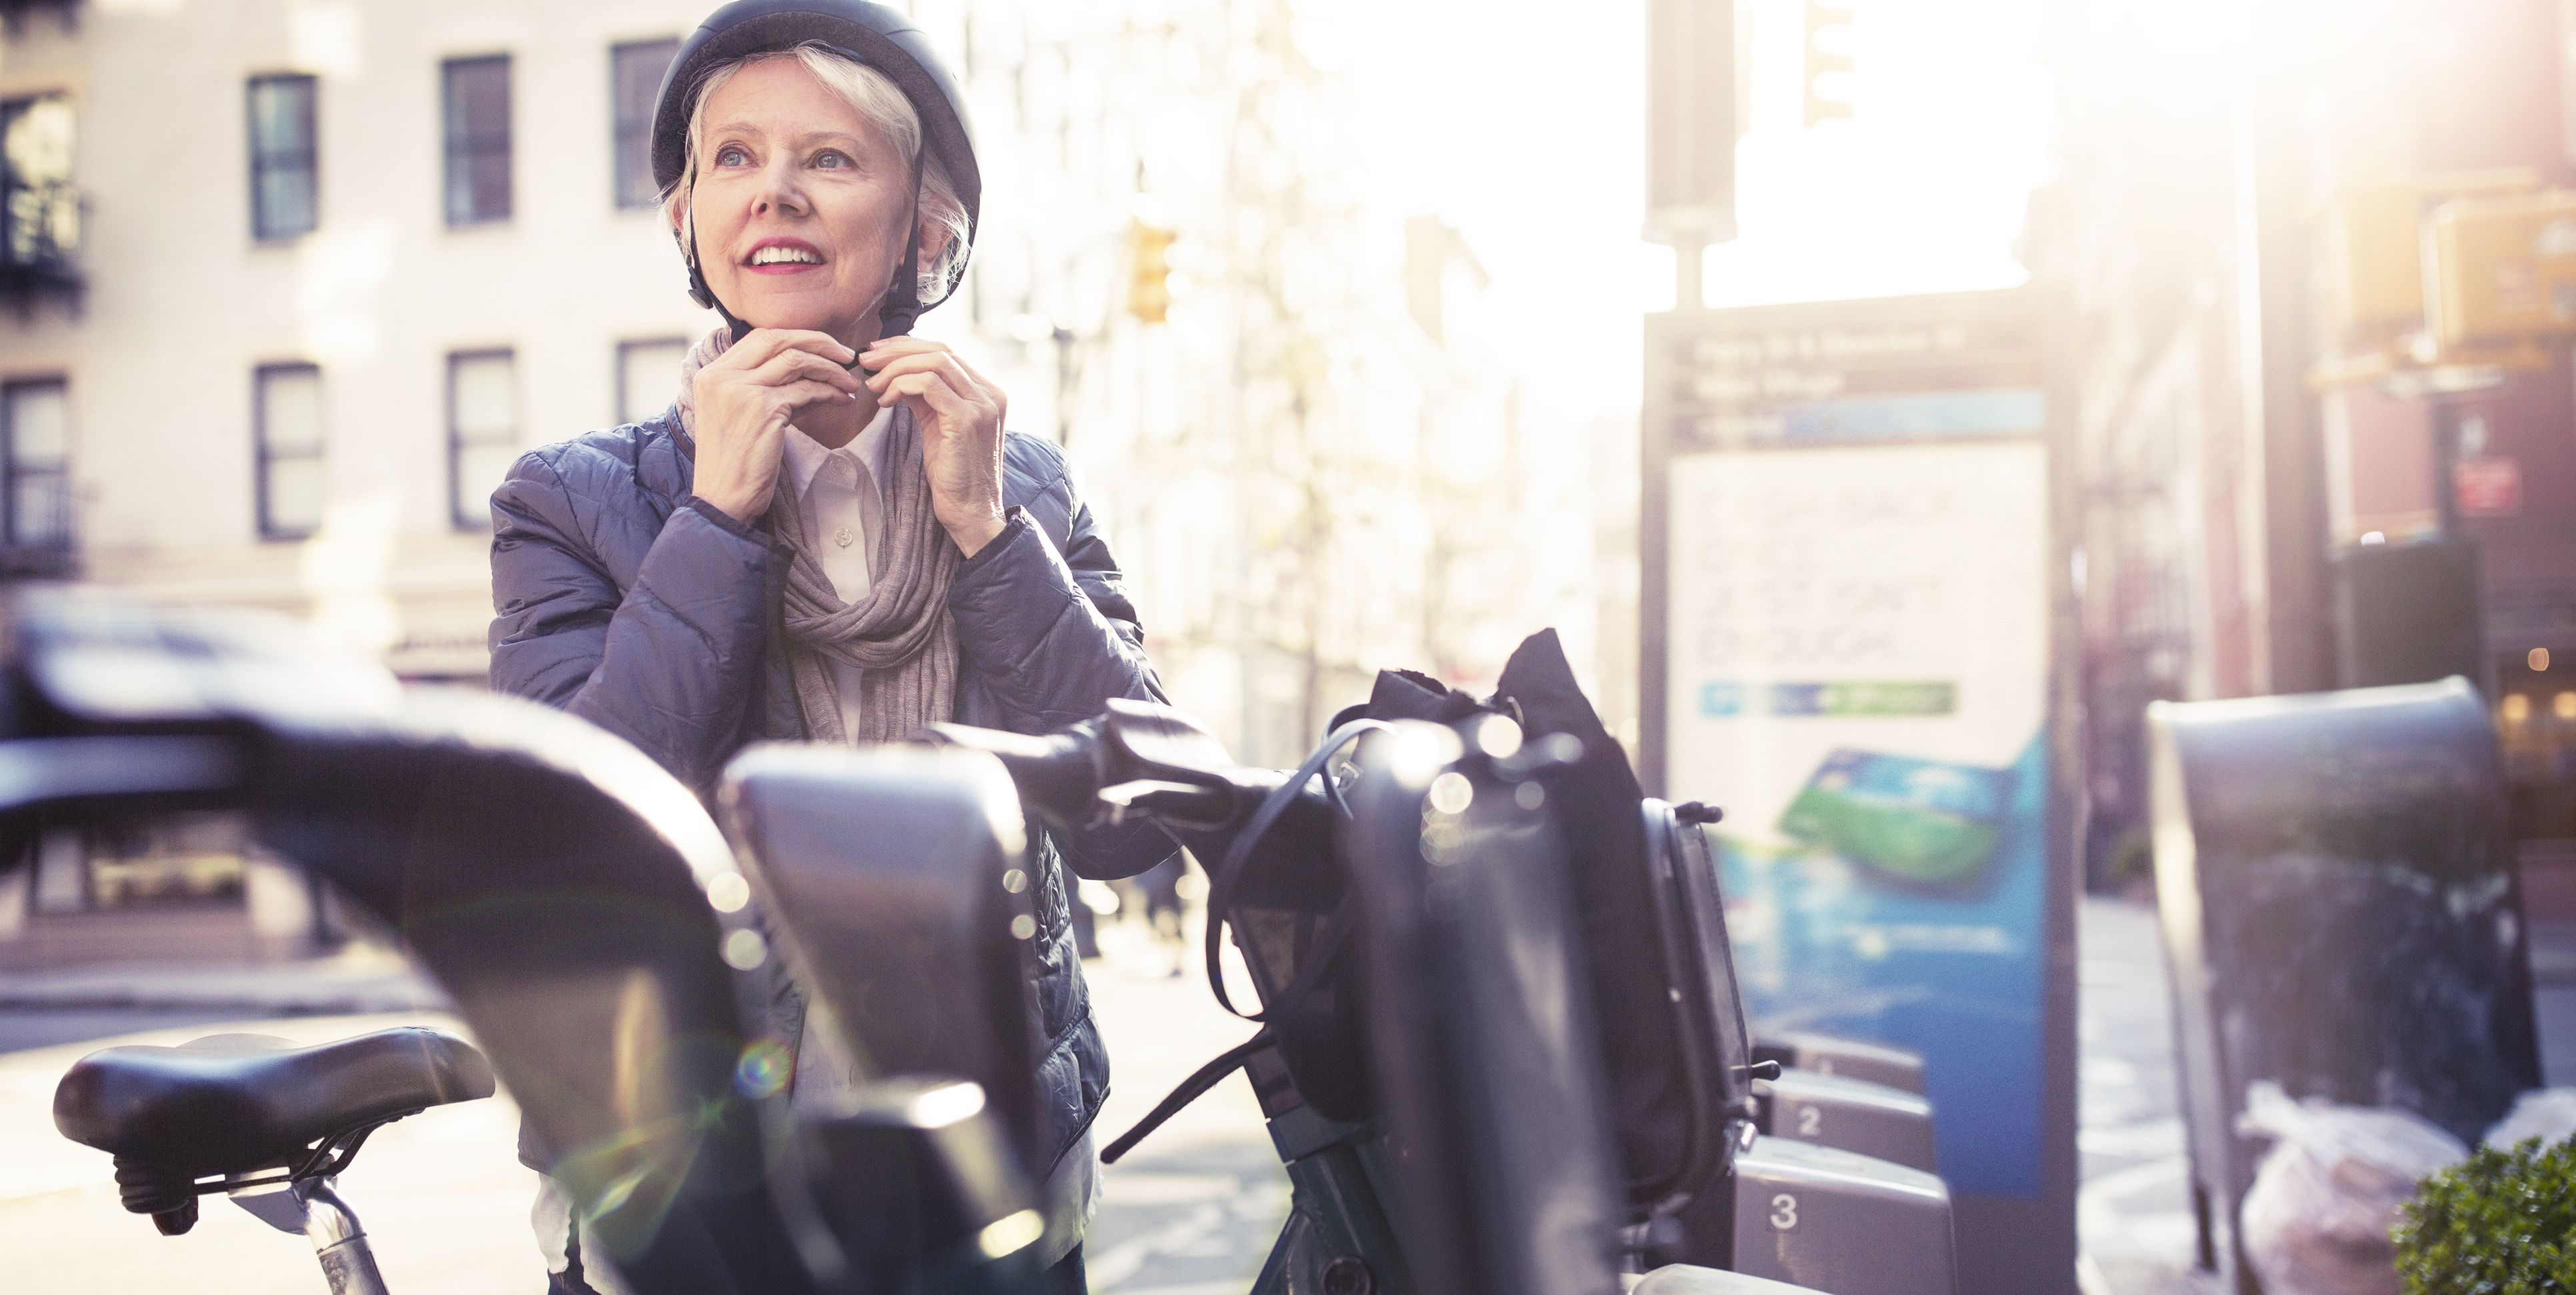 Thoughtful senior woman wearing helmet while standing by bicycles